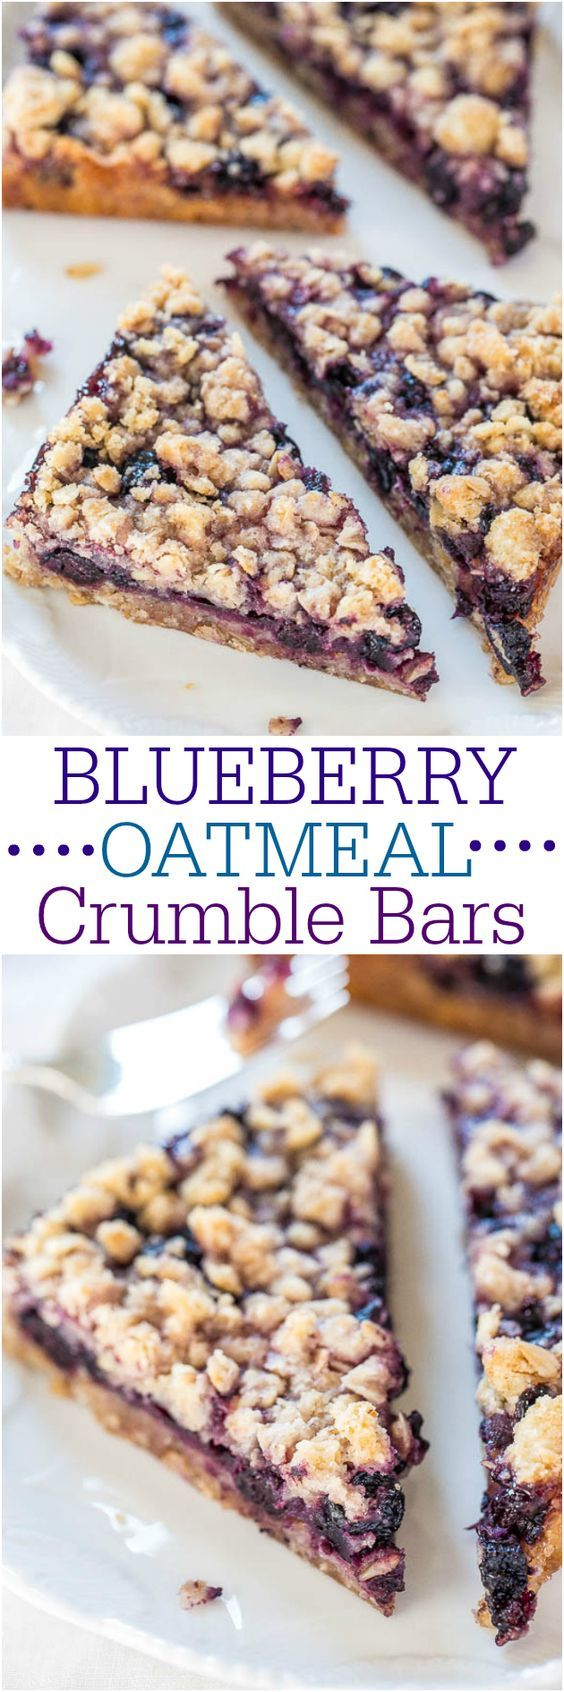 Blueberry Oatmeal Crumble Bars - Fast easy no-mixer bars great for breakfast snacks or a healthy dessert! BIG crumbles and juicy berries are irresistible!!